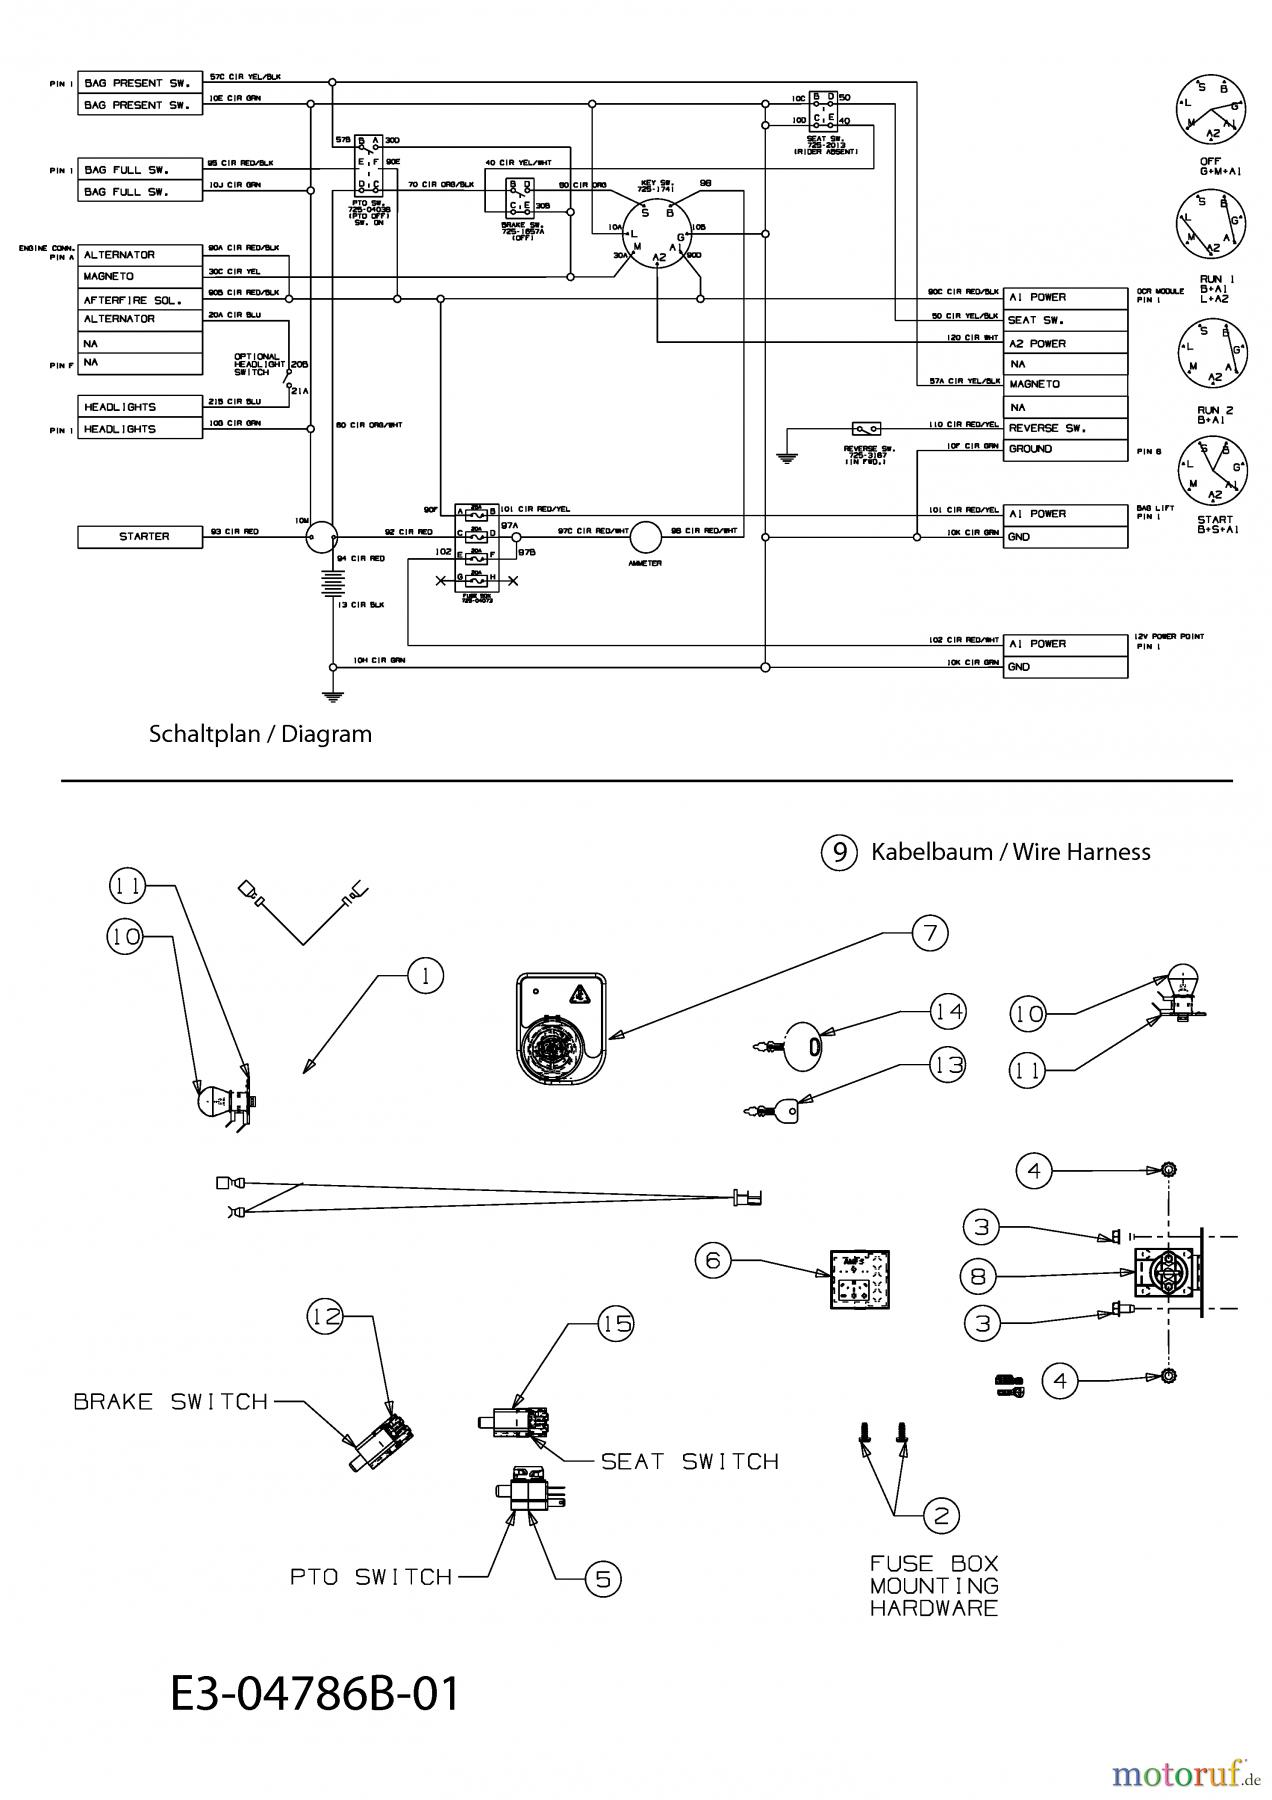 ranch king lawn mower belt diagram ranch free engine image for user manual